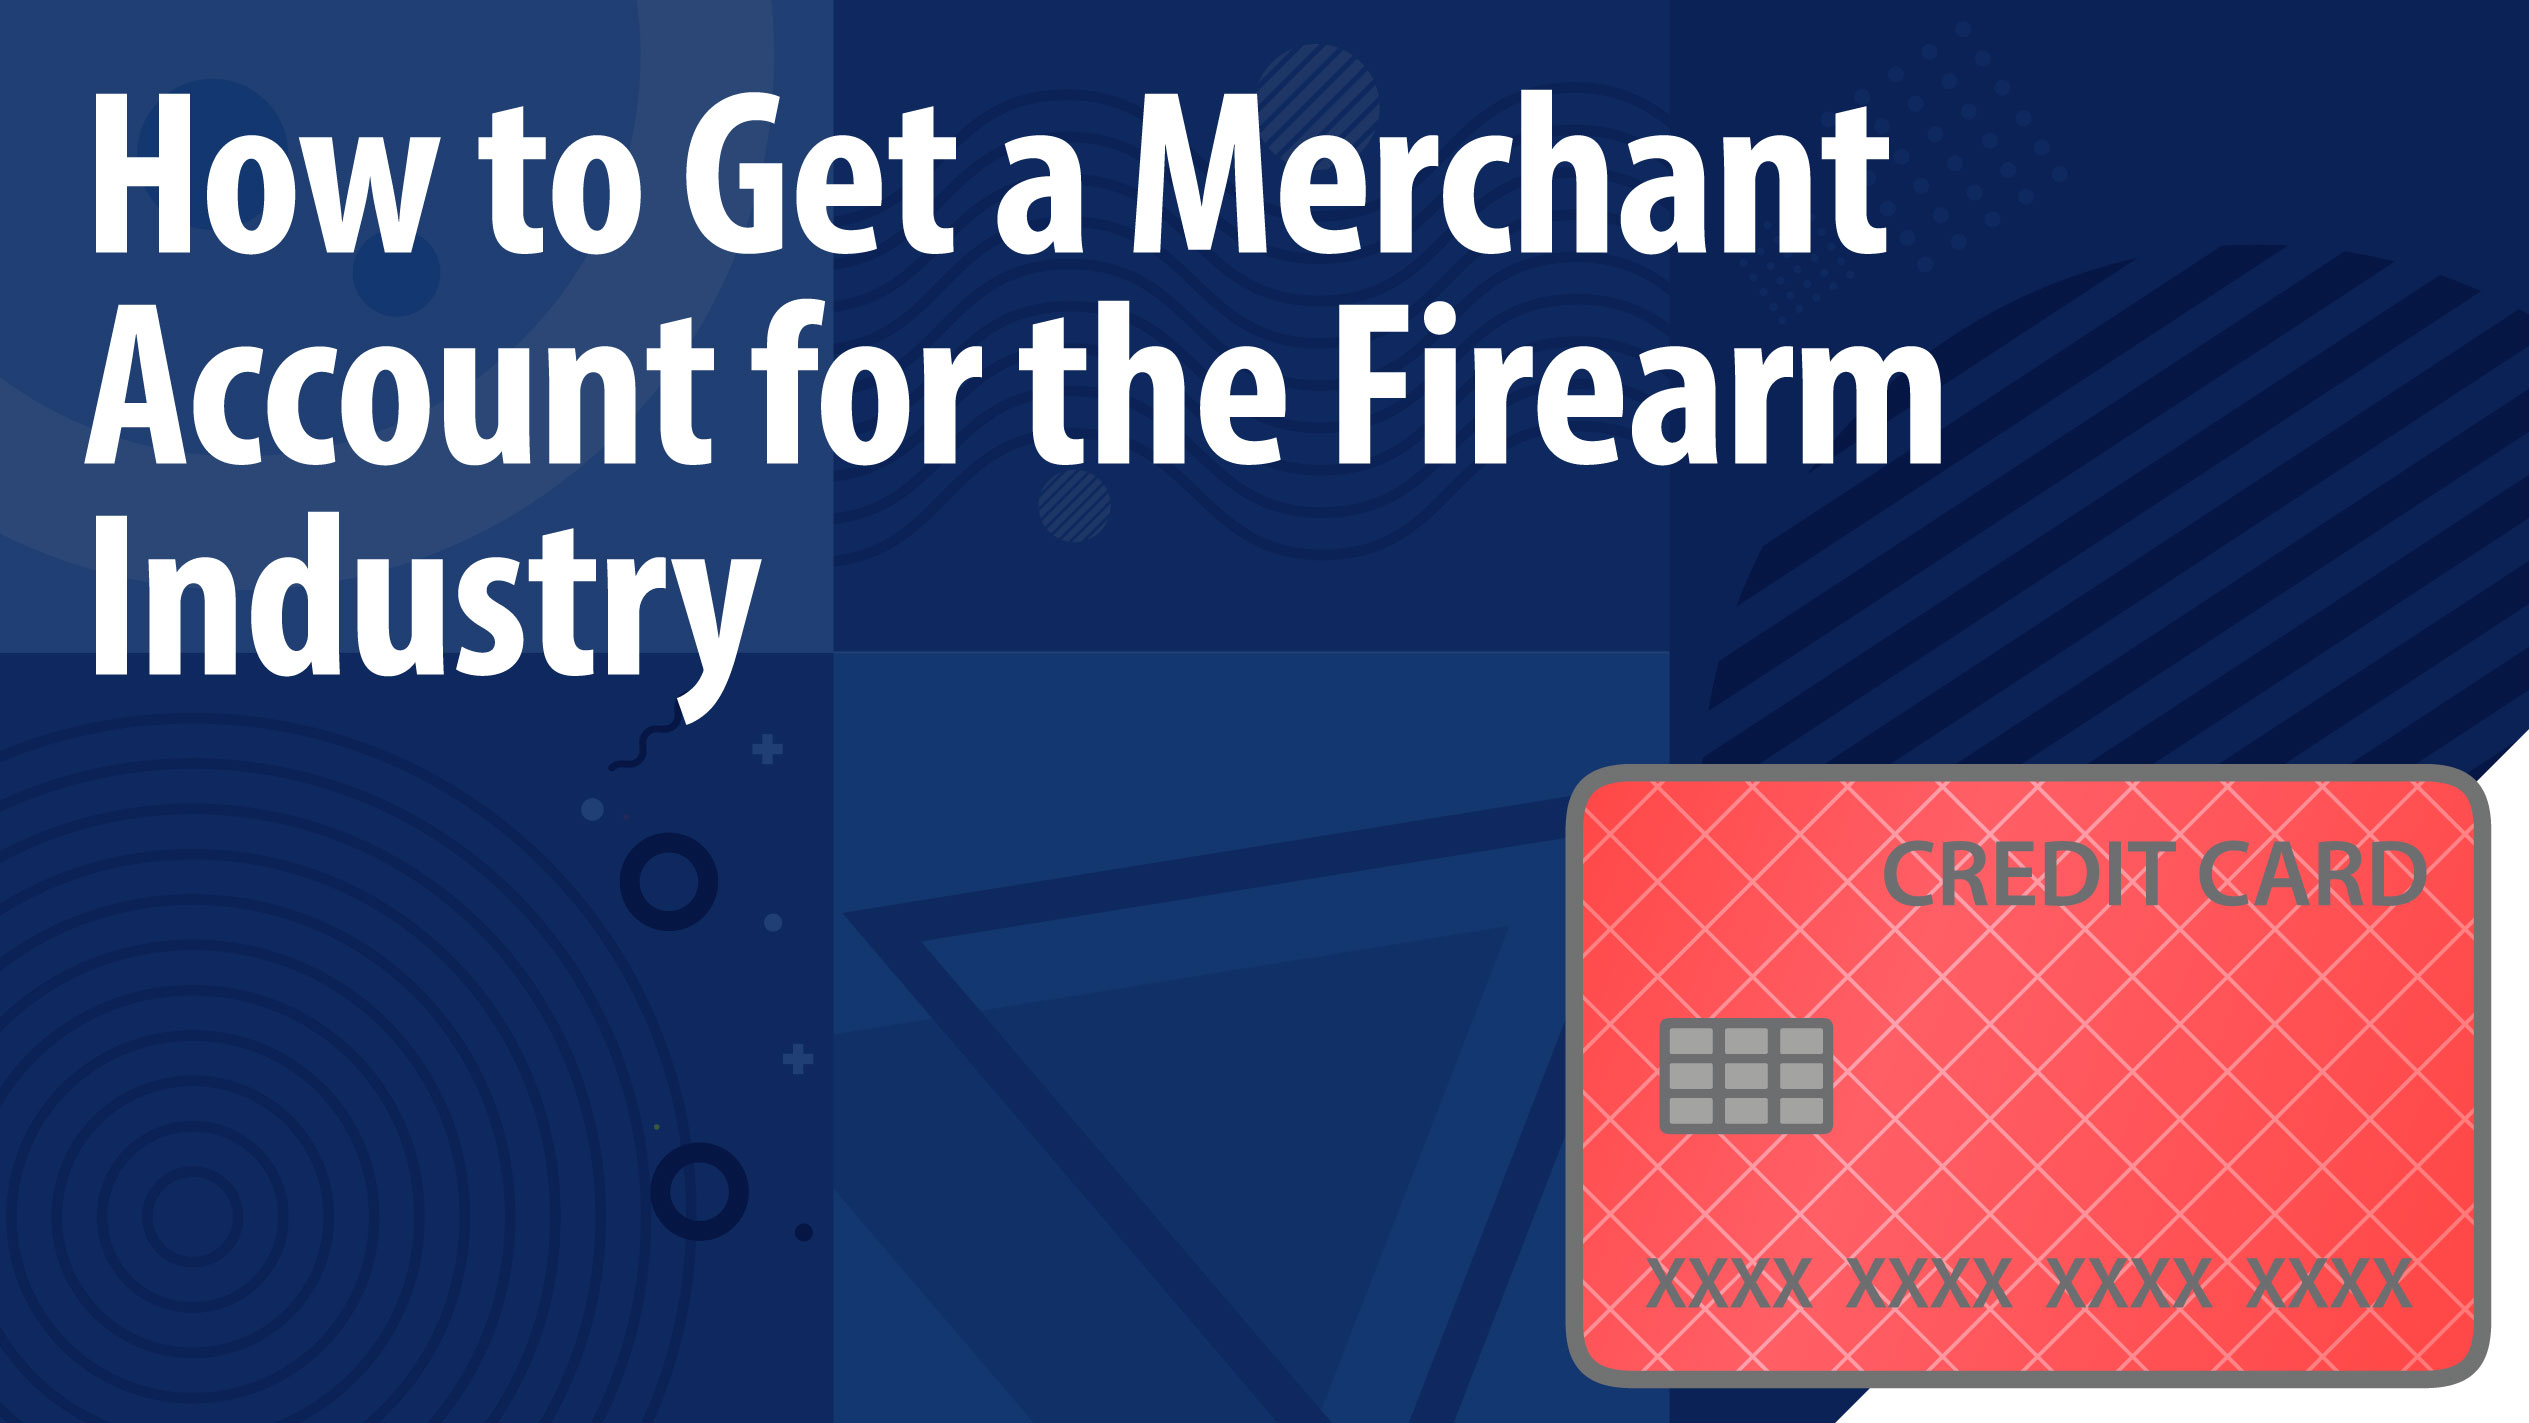 How to Get a Merchant Account for the Firearm Industry